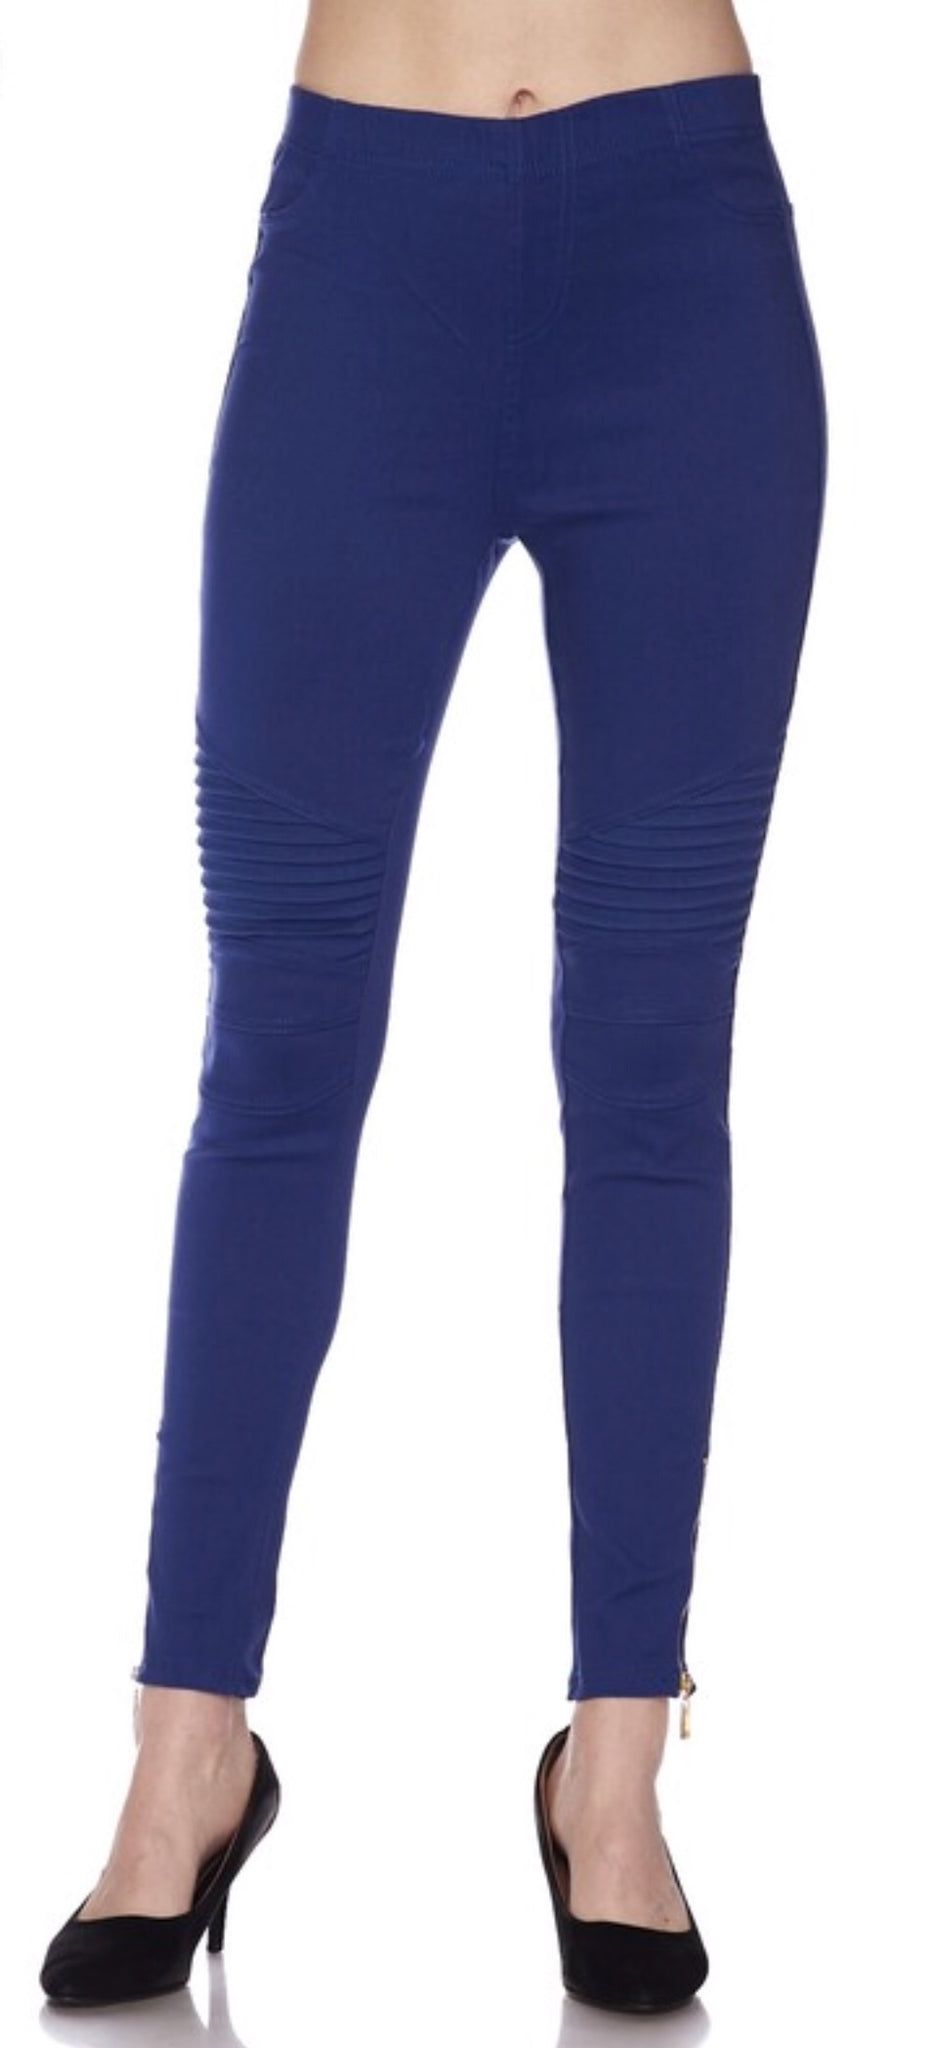 Royal Blue Glam Moto Leggings with Zipper